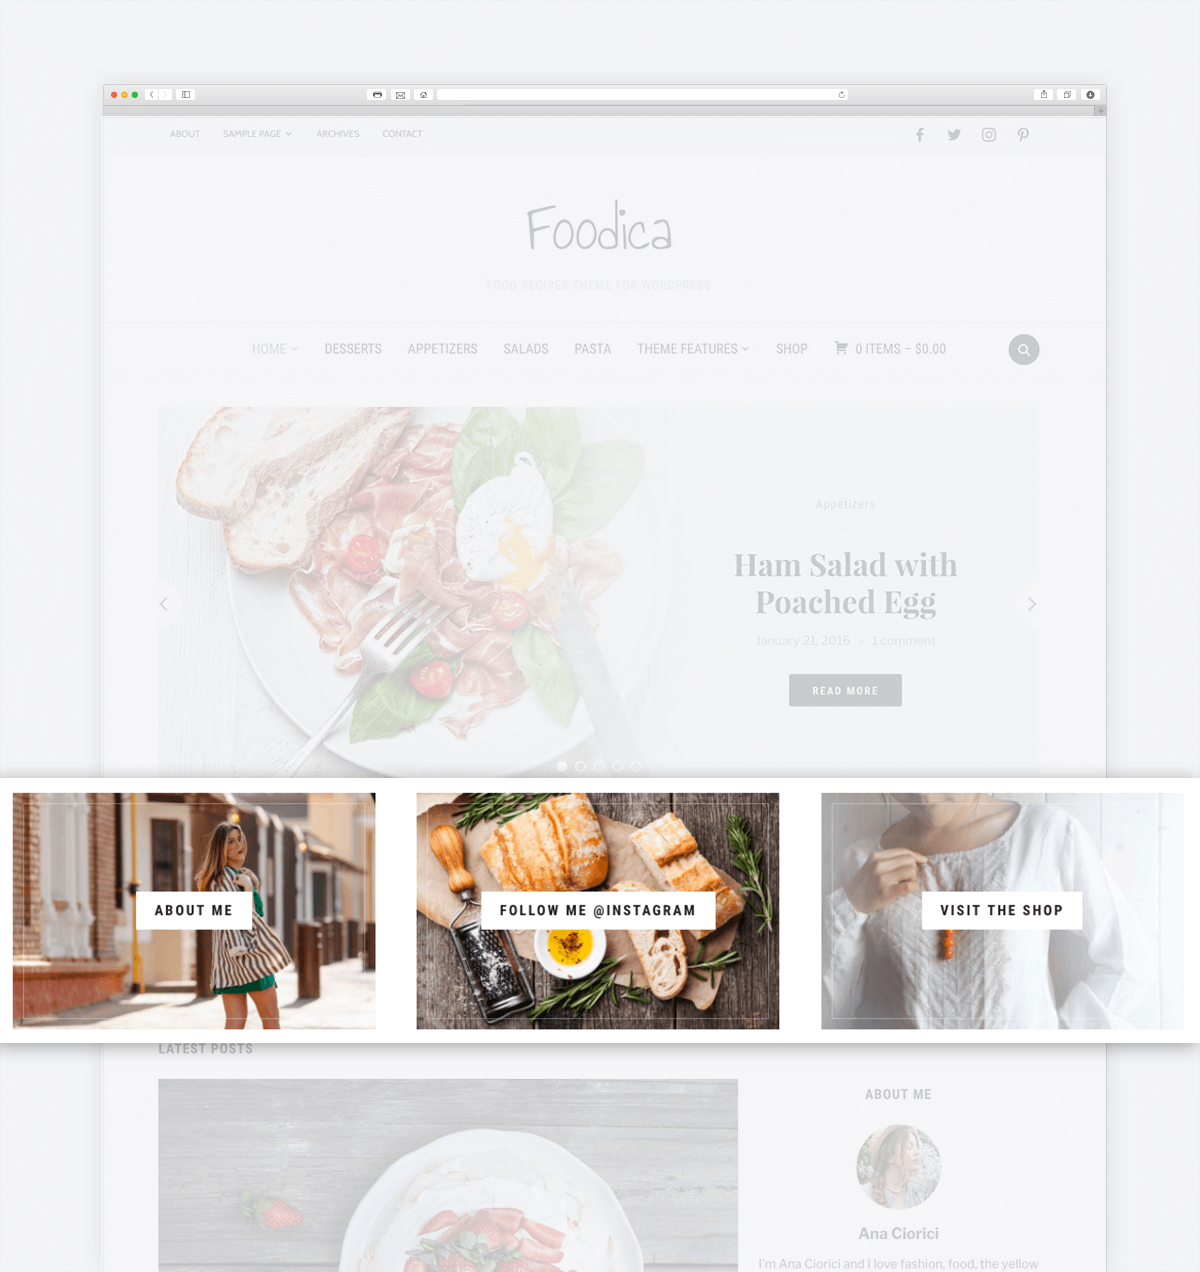 foodica-image-box-widget